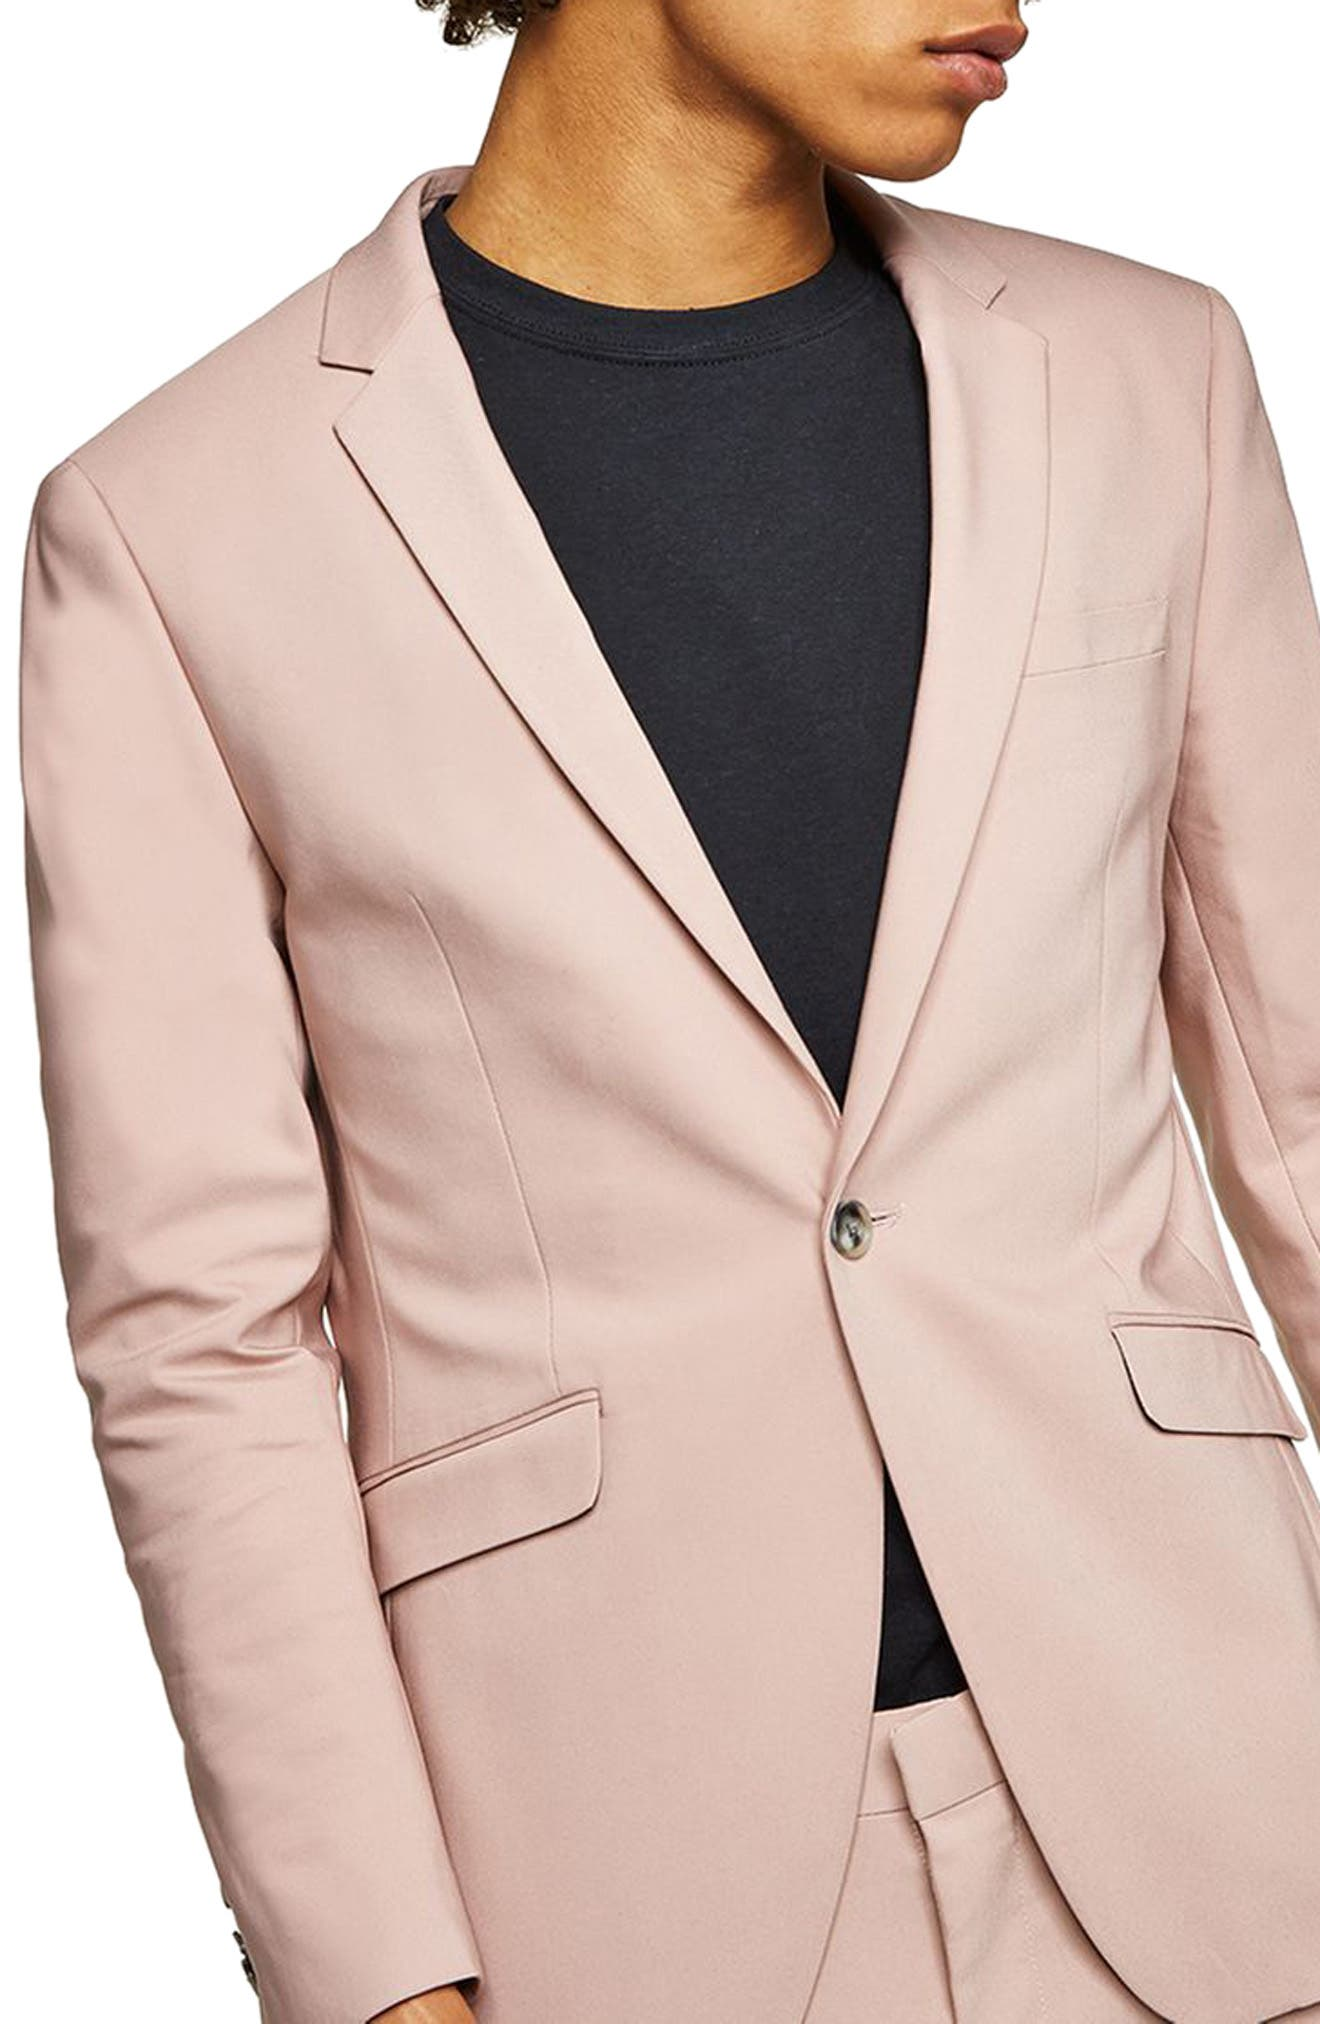 Skinny Fit Suit Jacket,                             Main thumbnail 1, color,                             Pink Multi